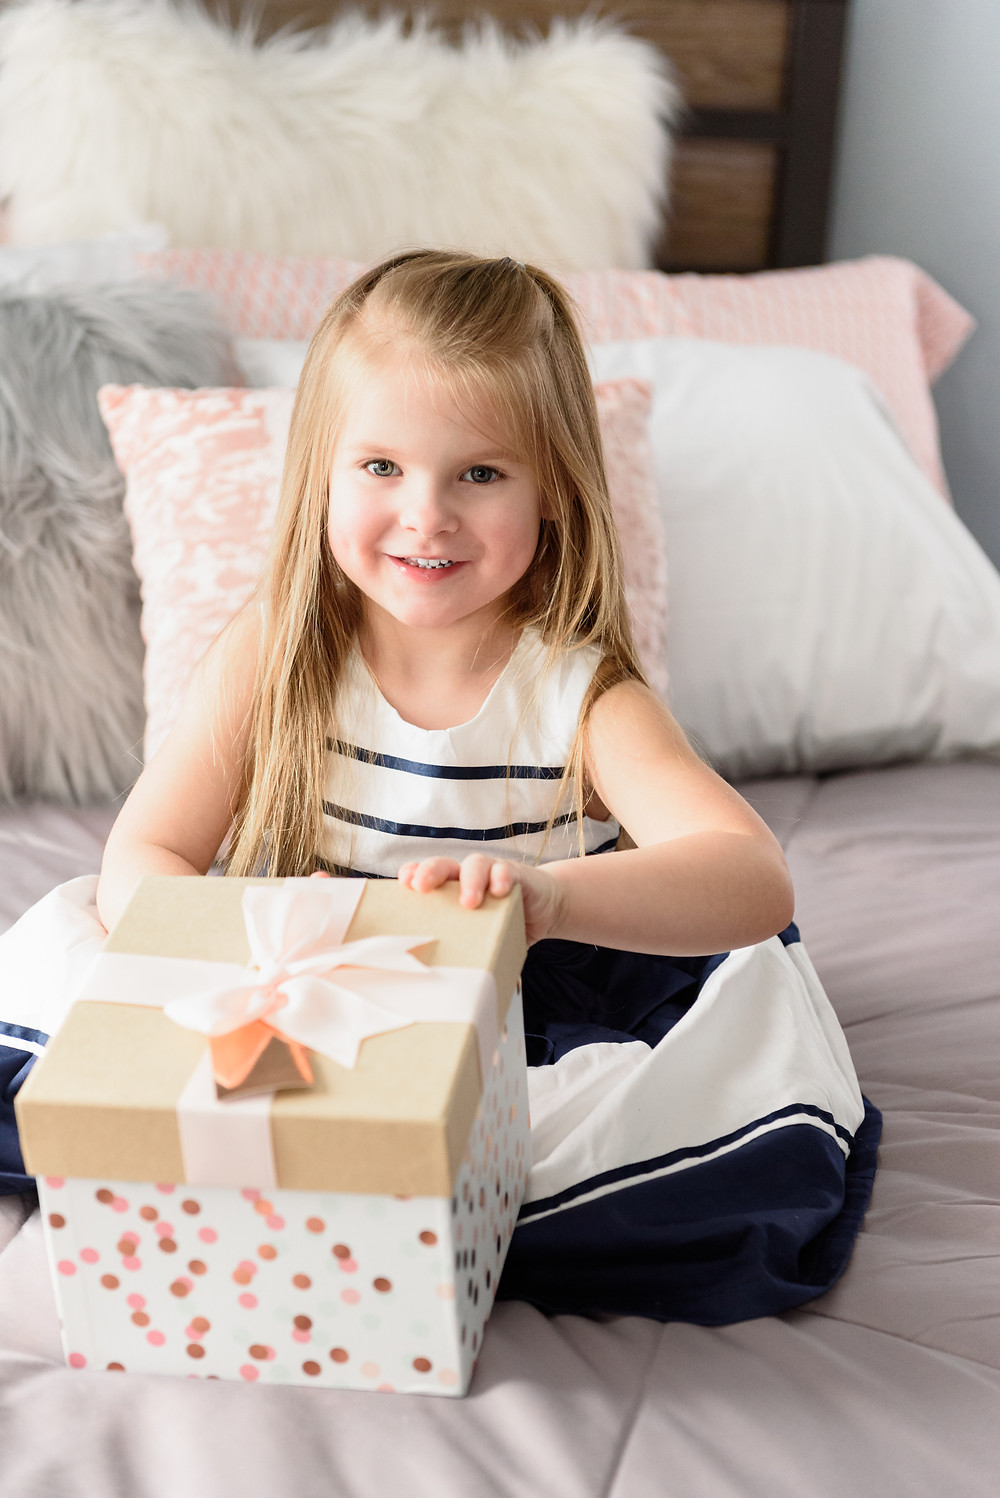 Young girl opening a presentin a pink and white gift box with a pink bow.